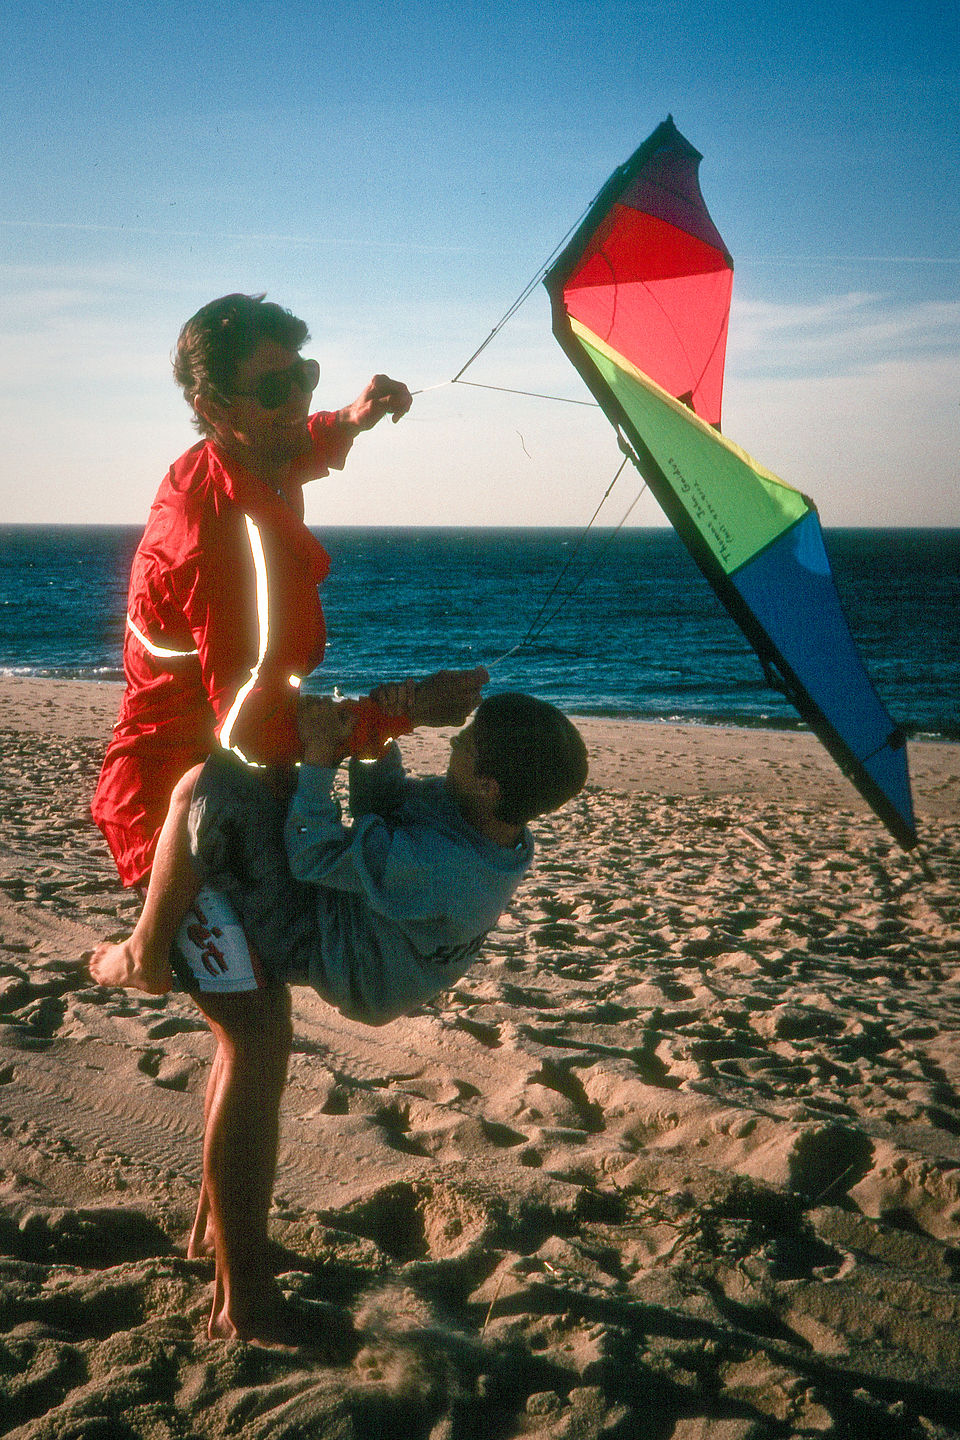 Herb flying offspring and kite